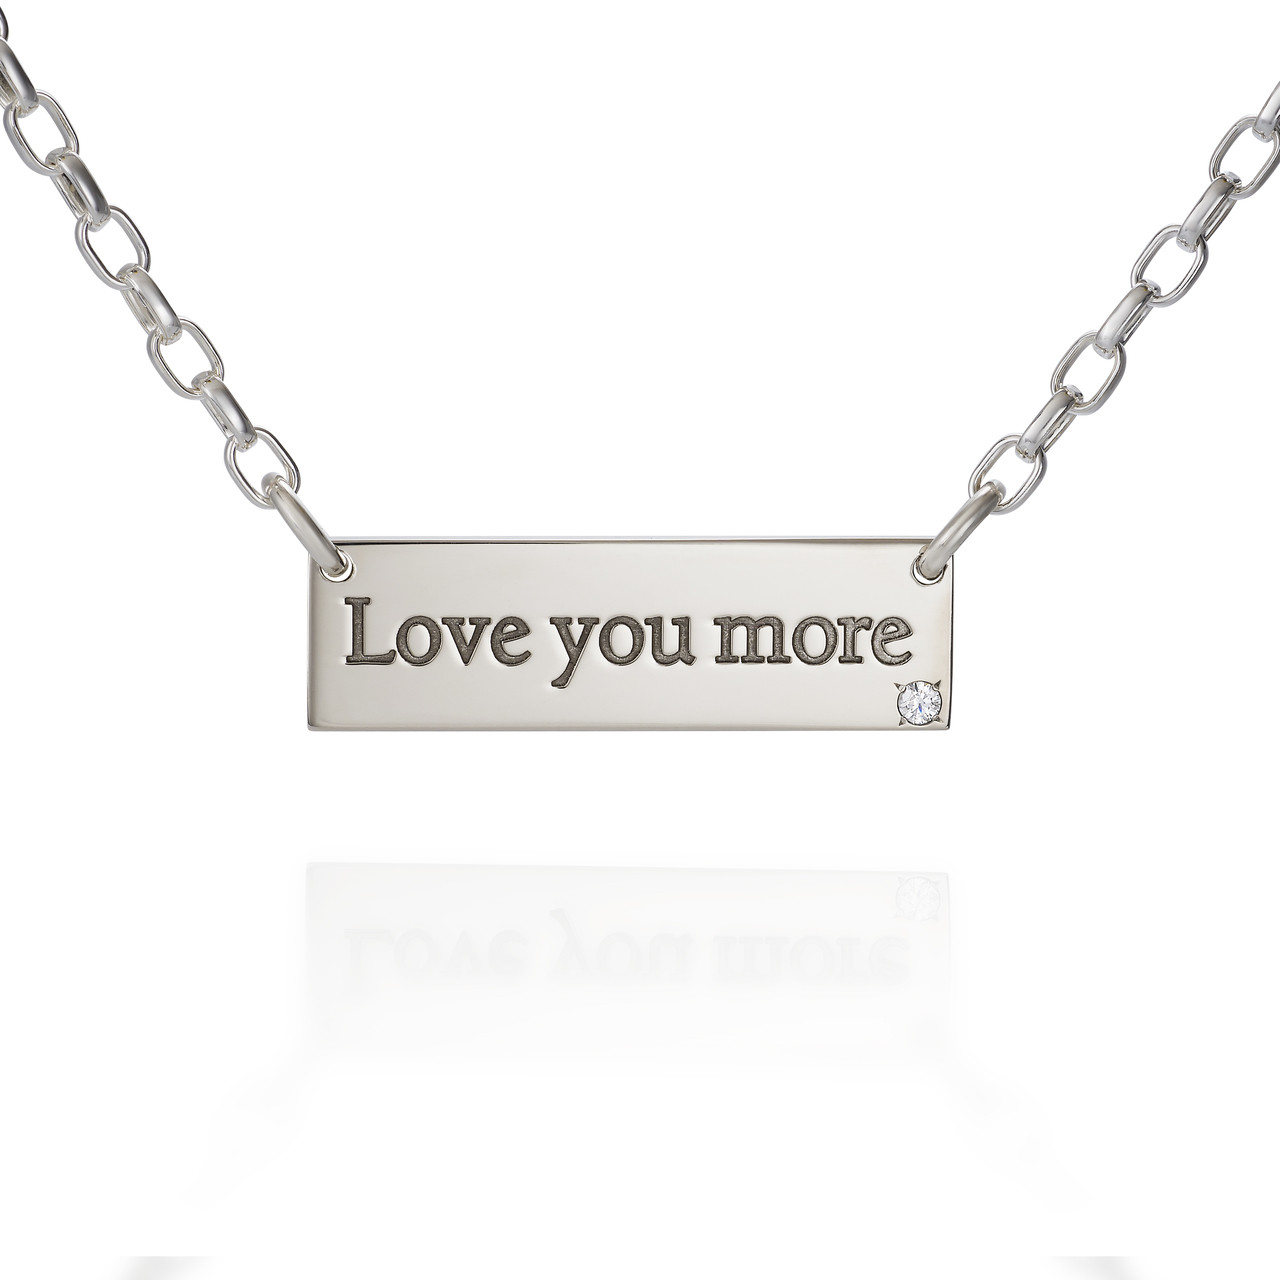 Love you more sterling silver bar necklace with diamond www love you more sterling silver bar necklace with diamond aloadofball Choice Image